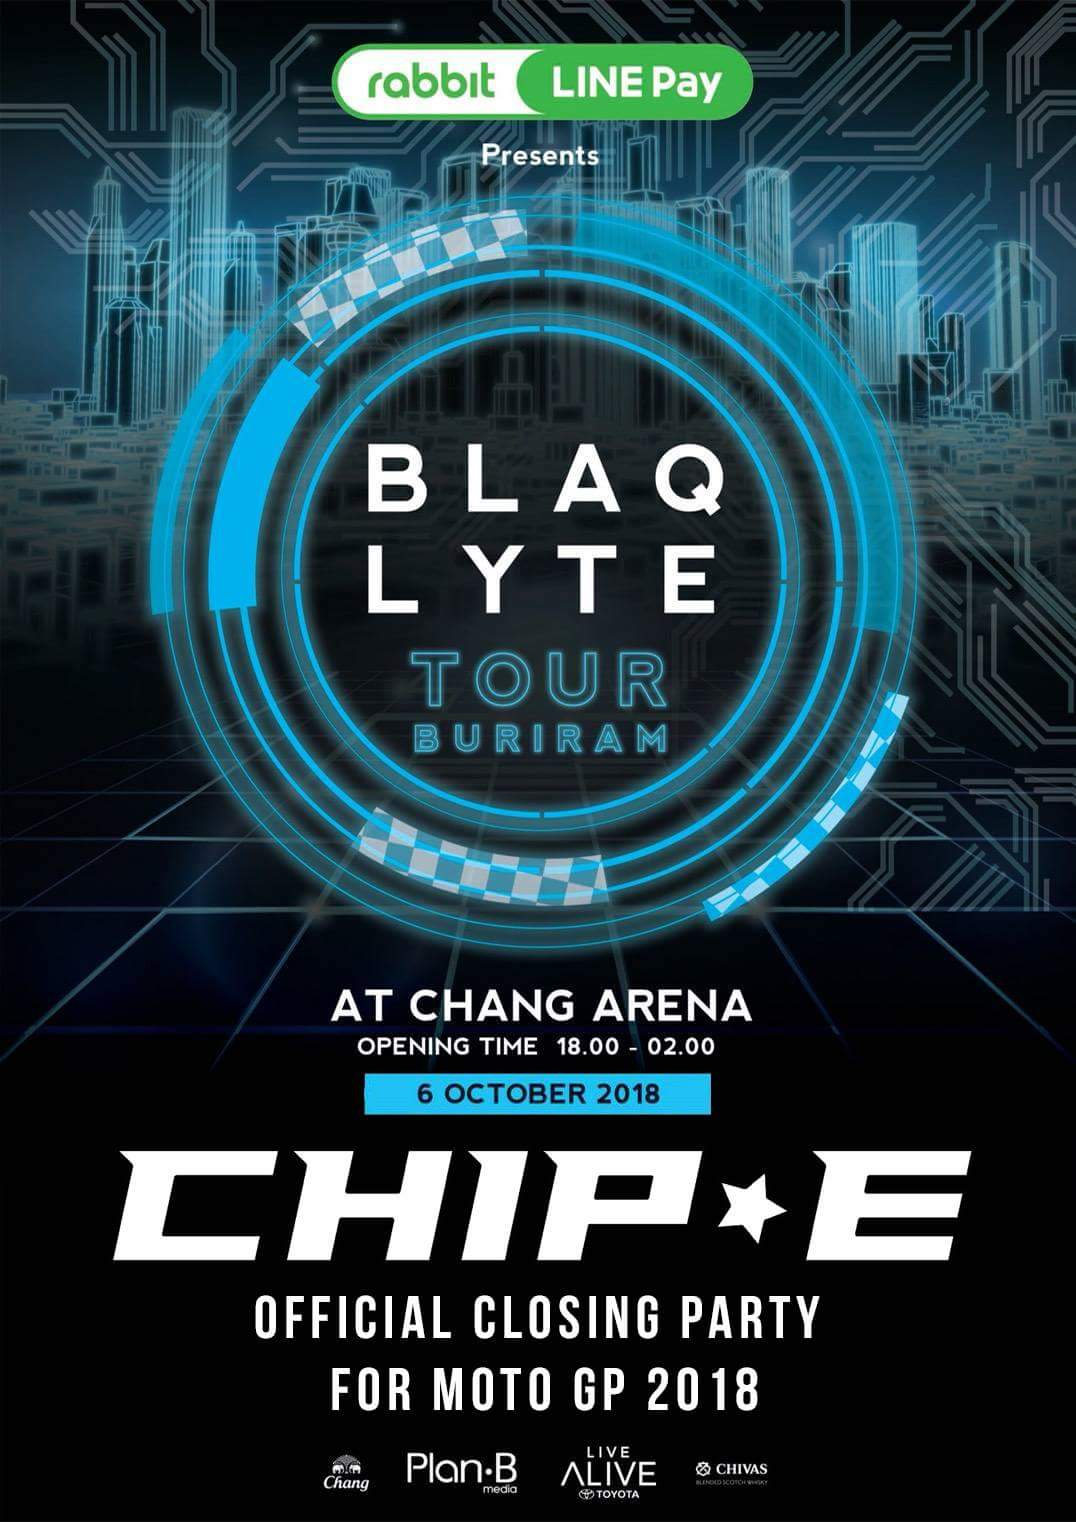 BLAQLYTE Tour Burinam